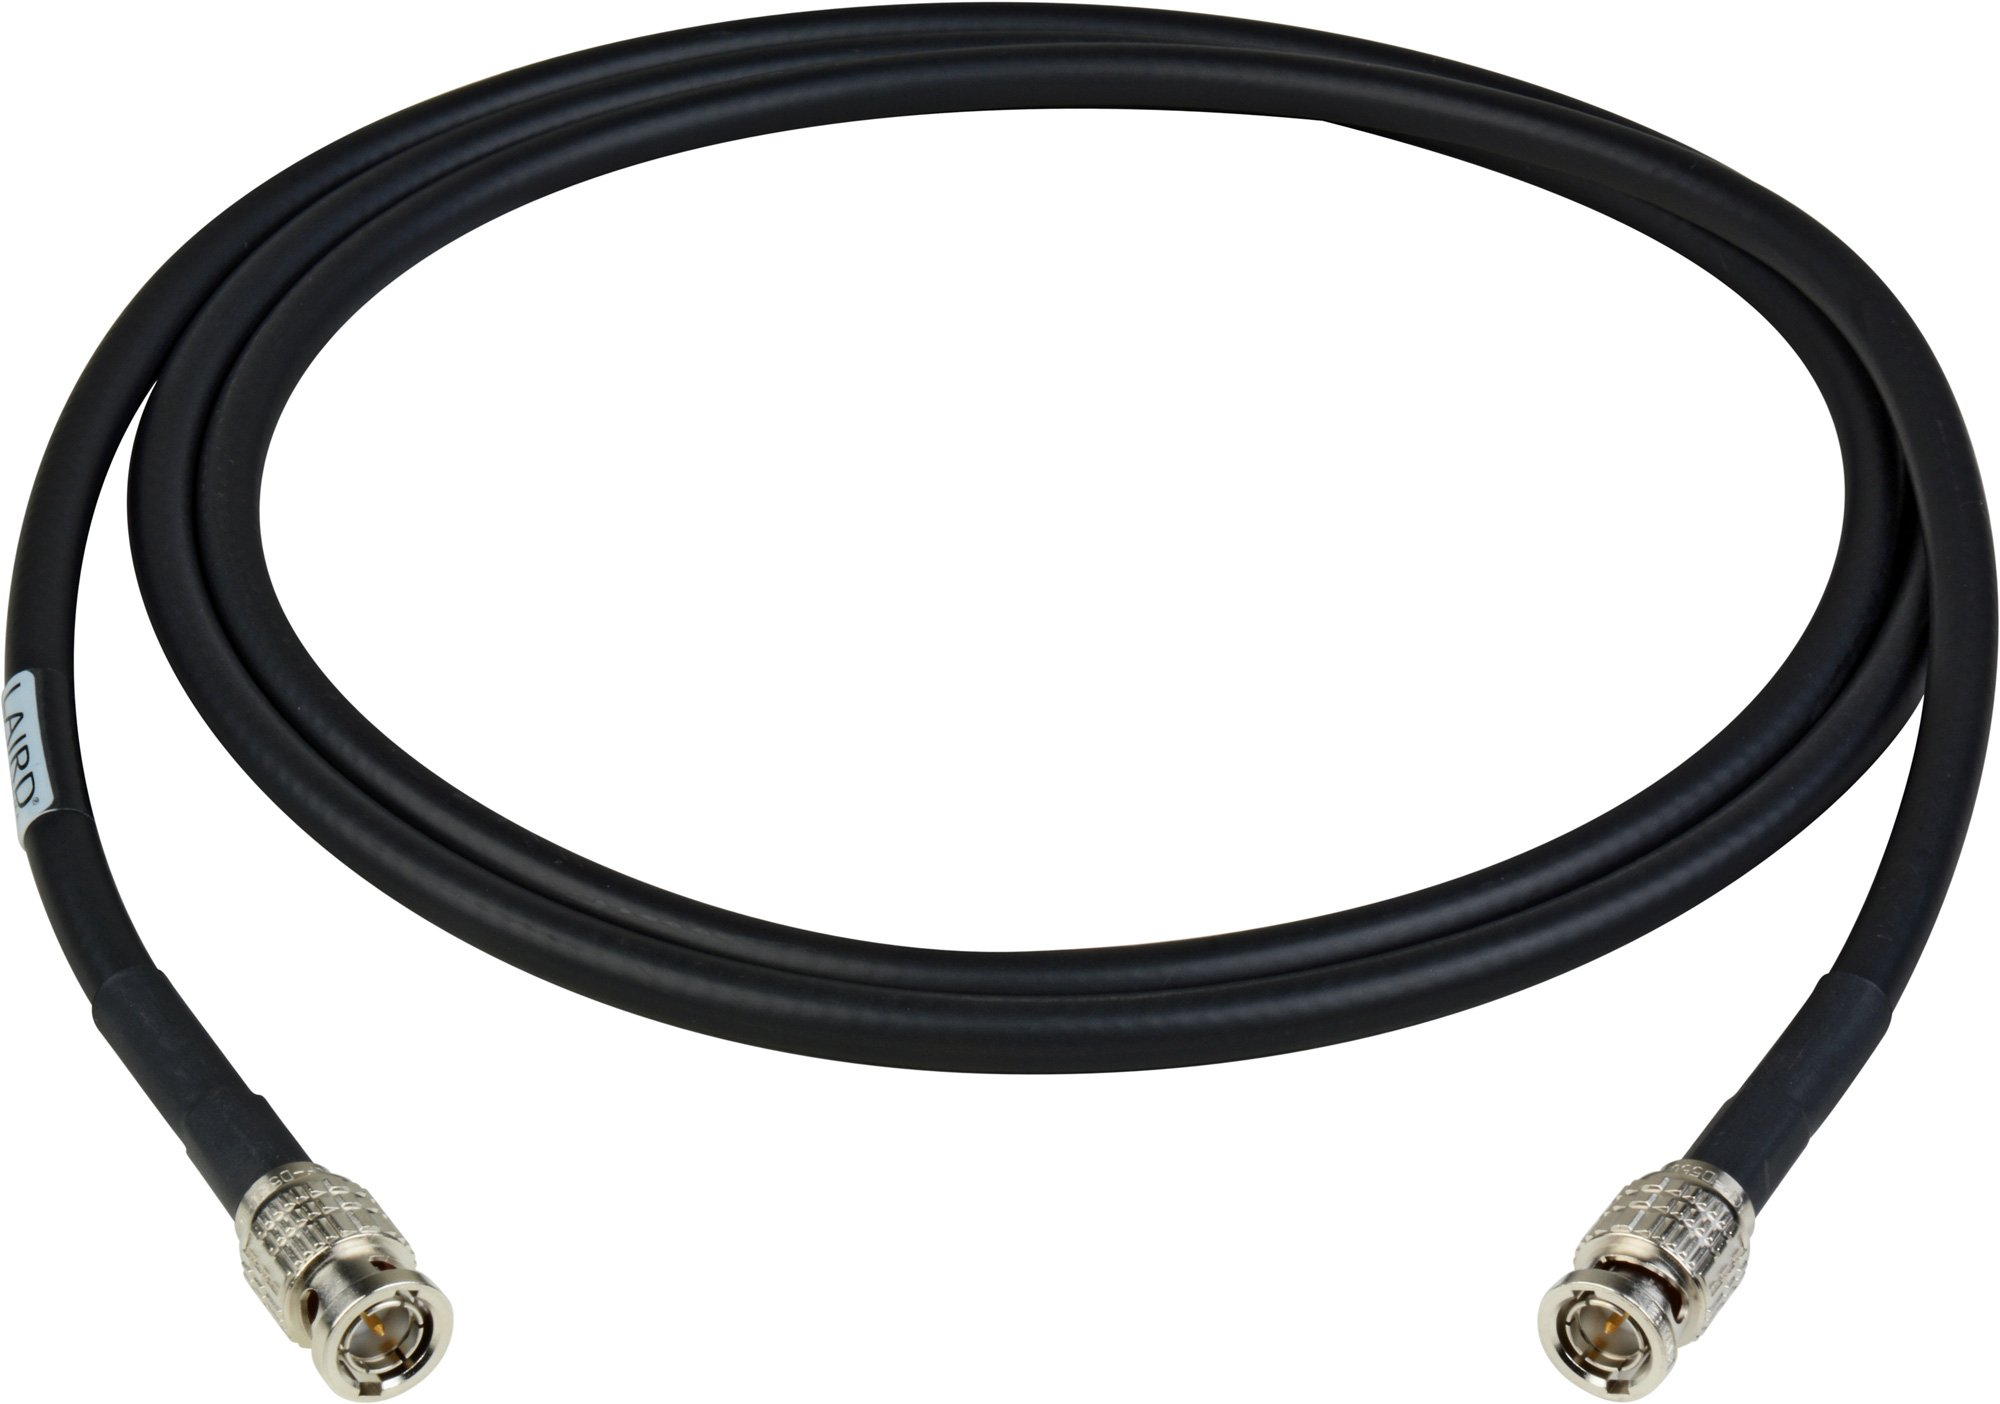 BNC to BNC Video Cables